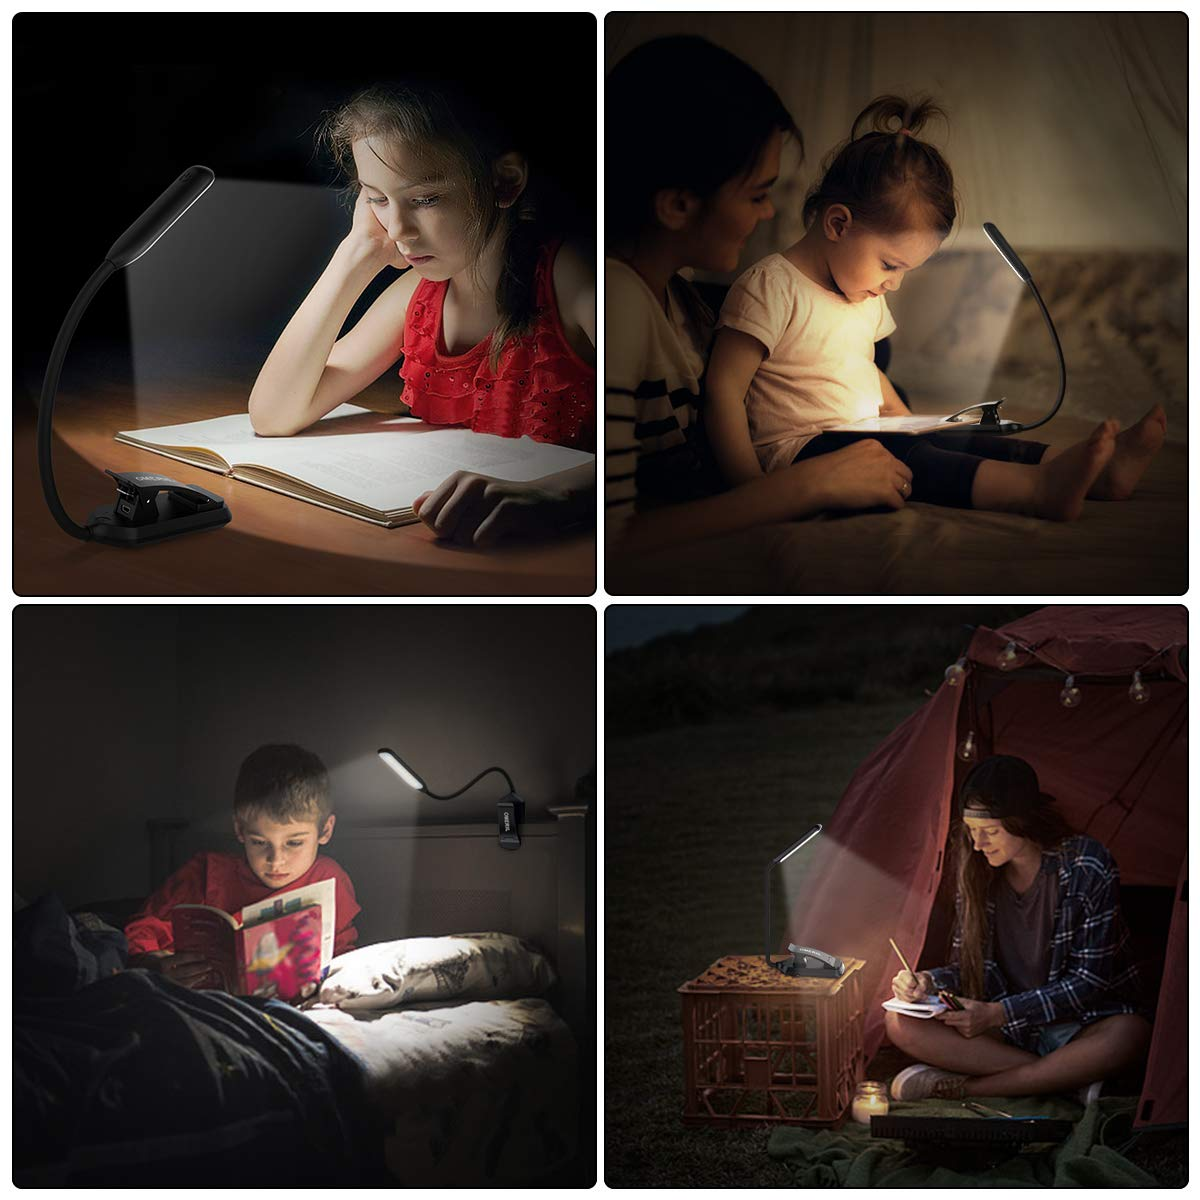 9 LEDs Clip on Reading Light Touch Control Stepless Dimming Desk Lamp with 3 Color Modes USB Rechargeable Eye-Care Night Light for Kids Adults Reading in Bed OMERIL Book Light